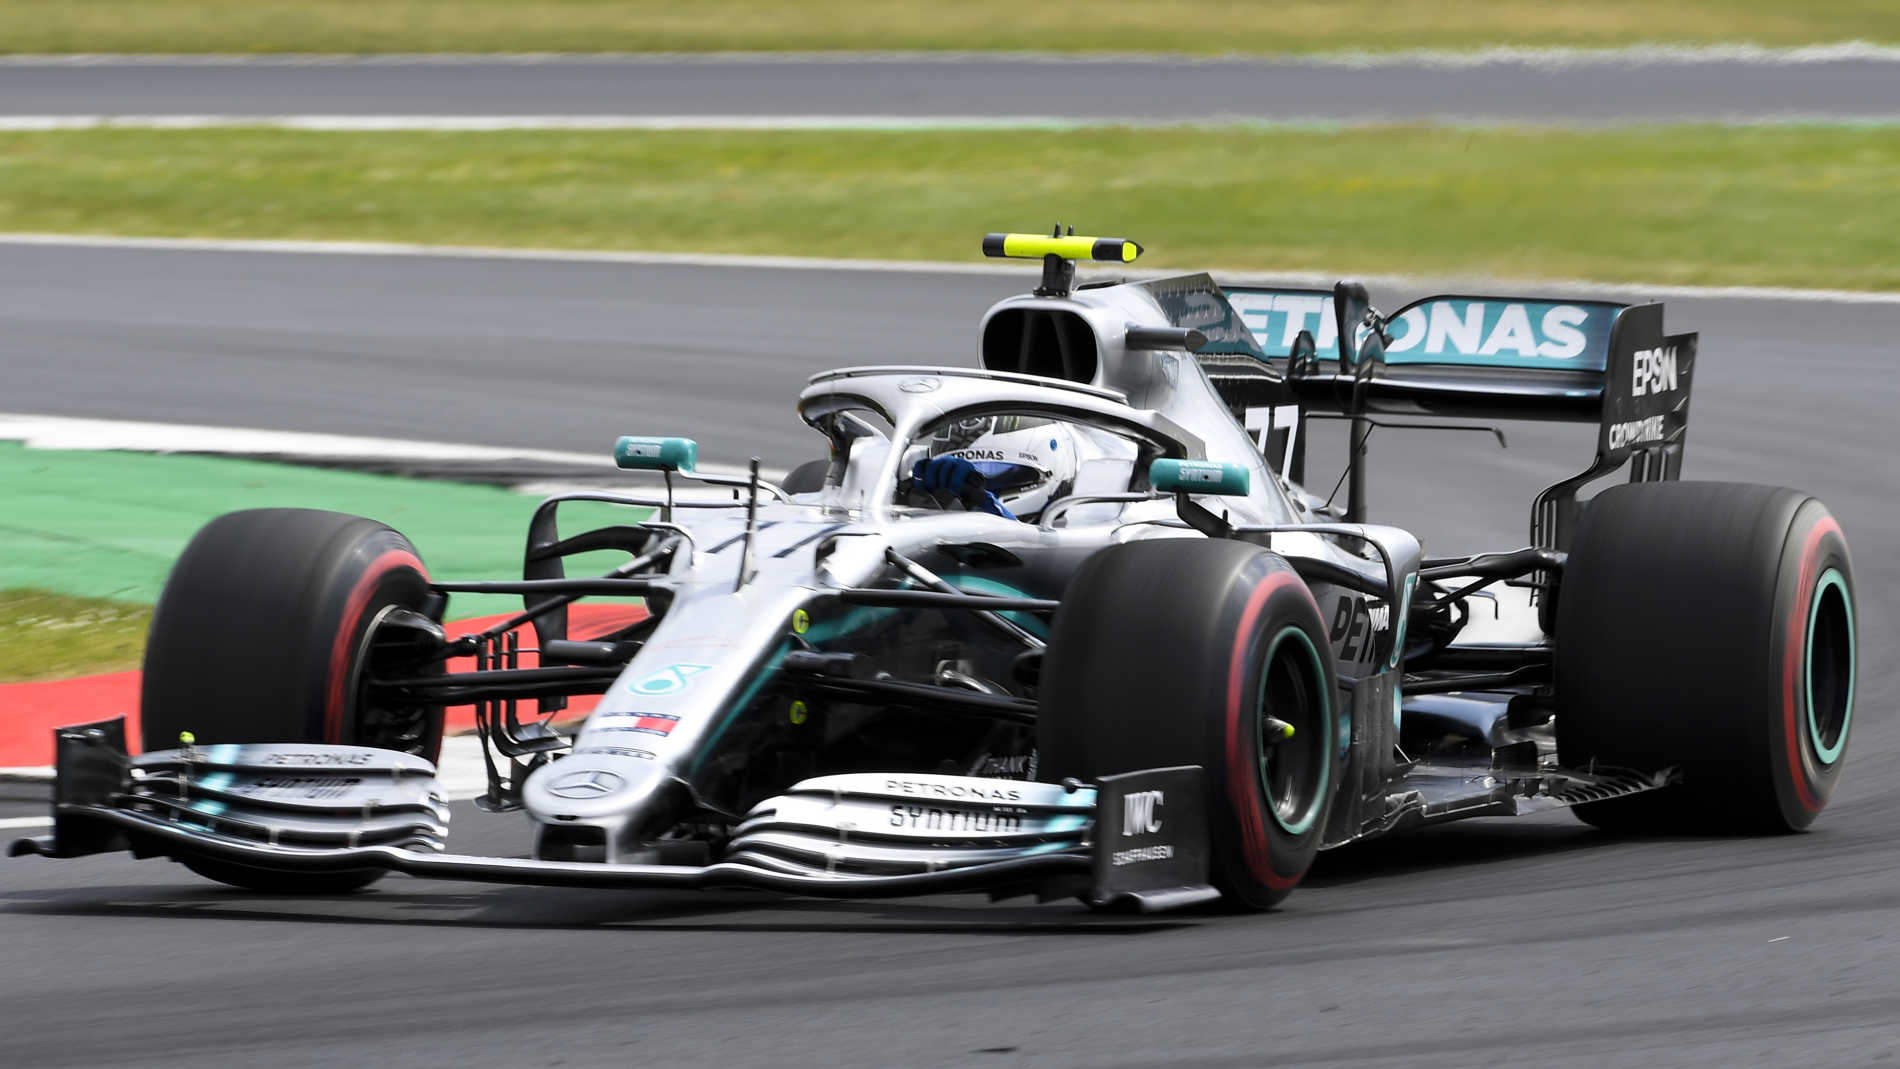 British Grand Prix 2019 Free Practice 2 report and highlights